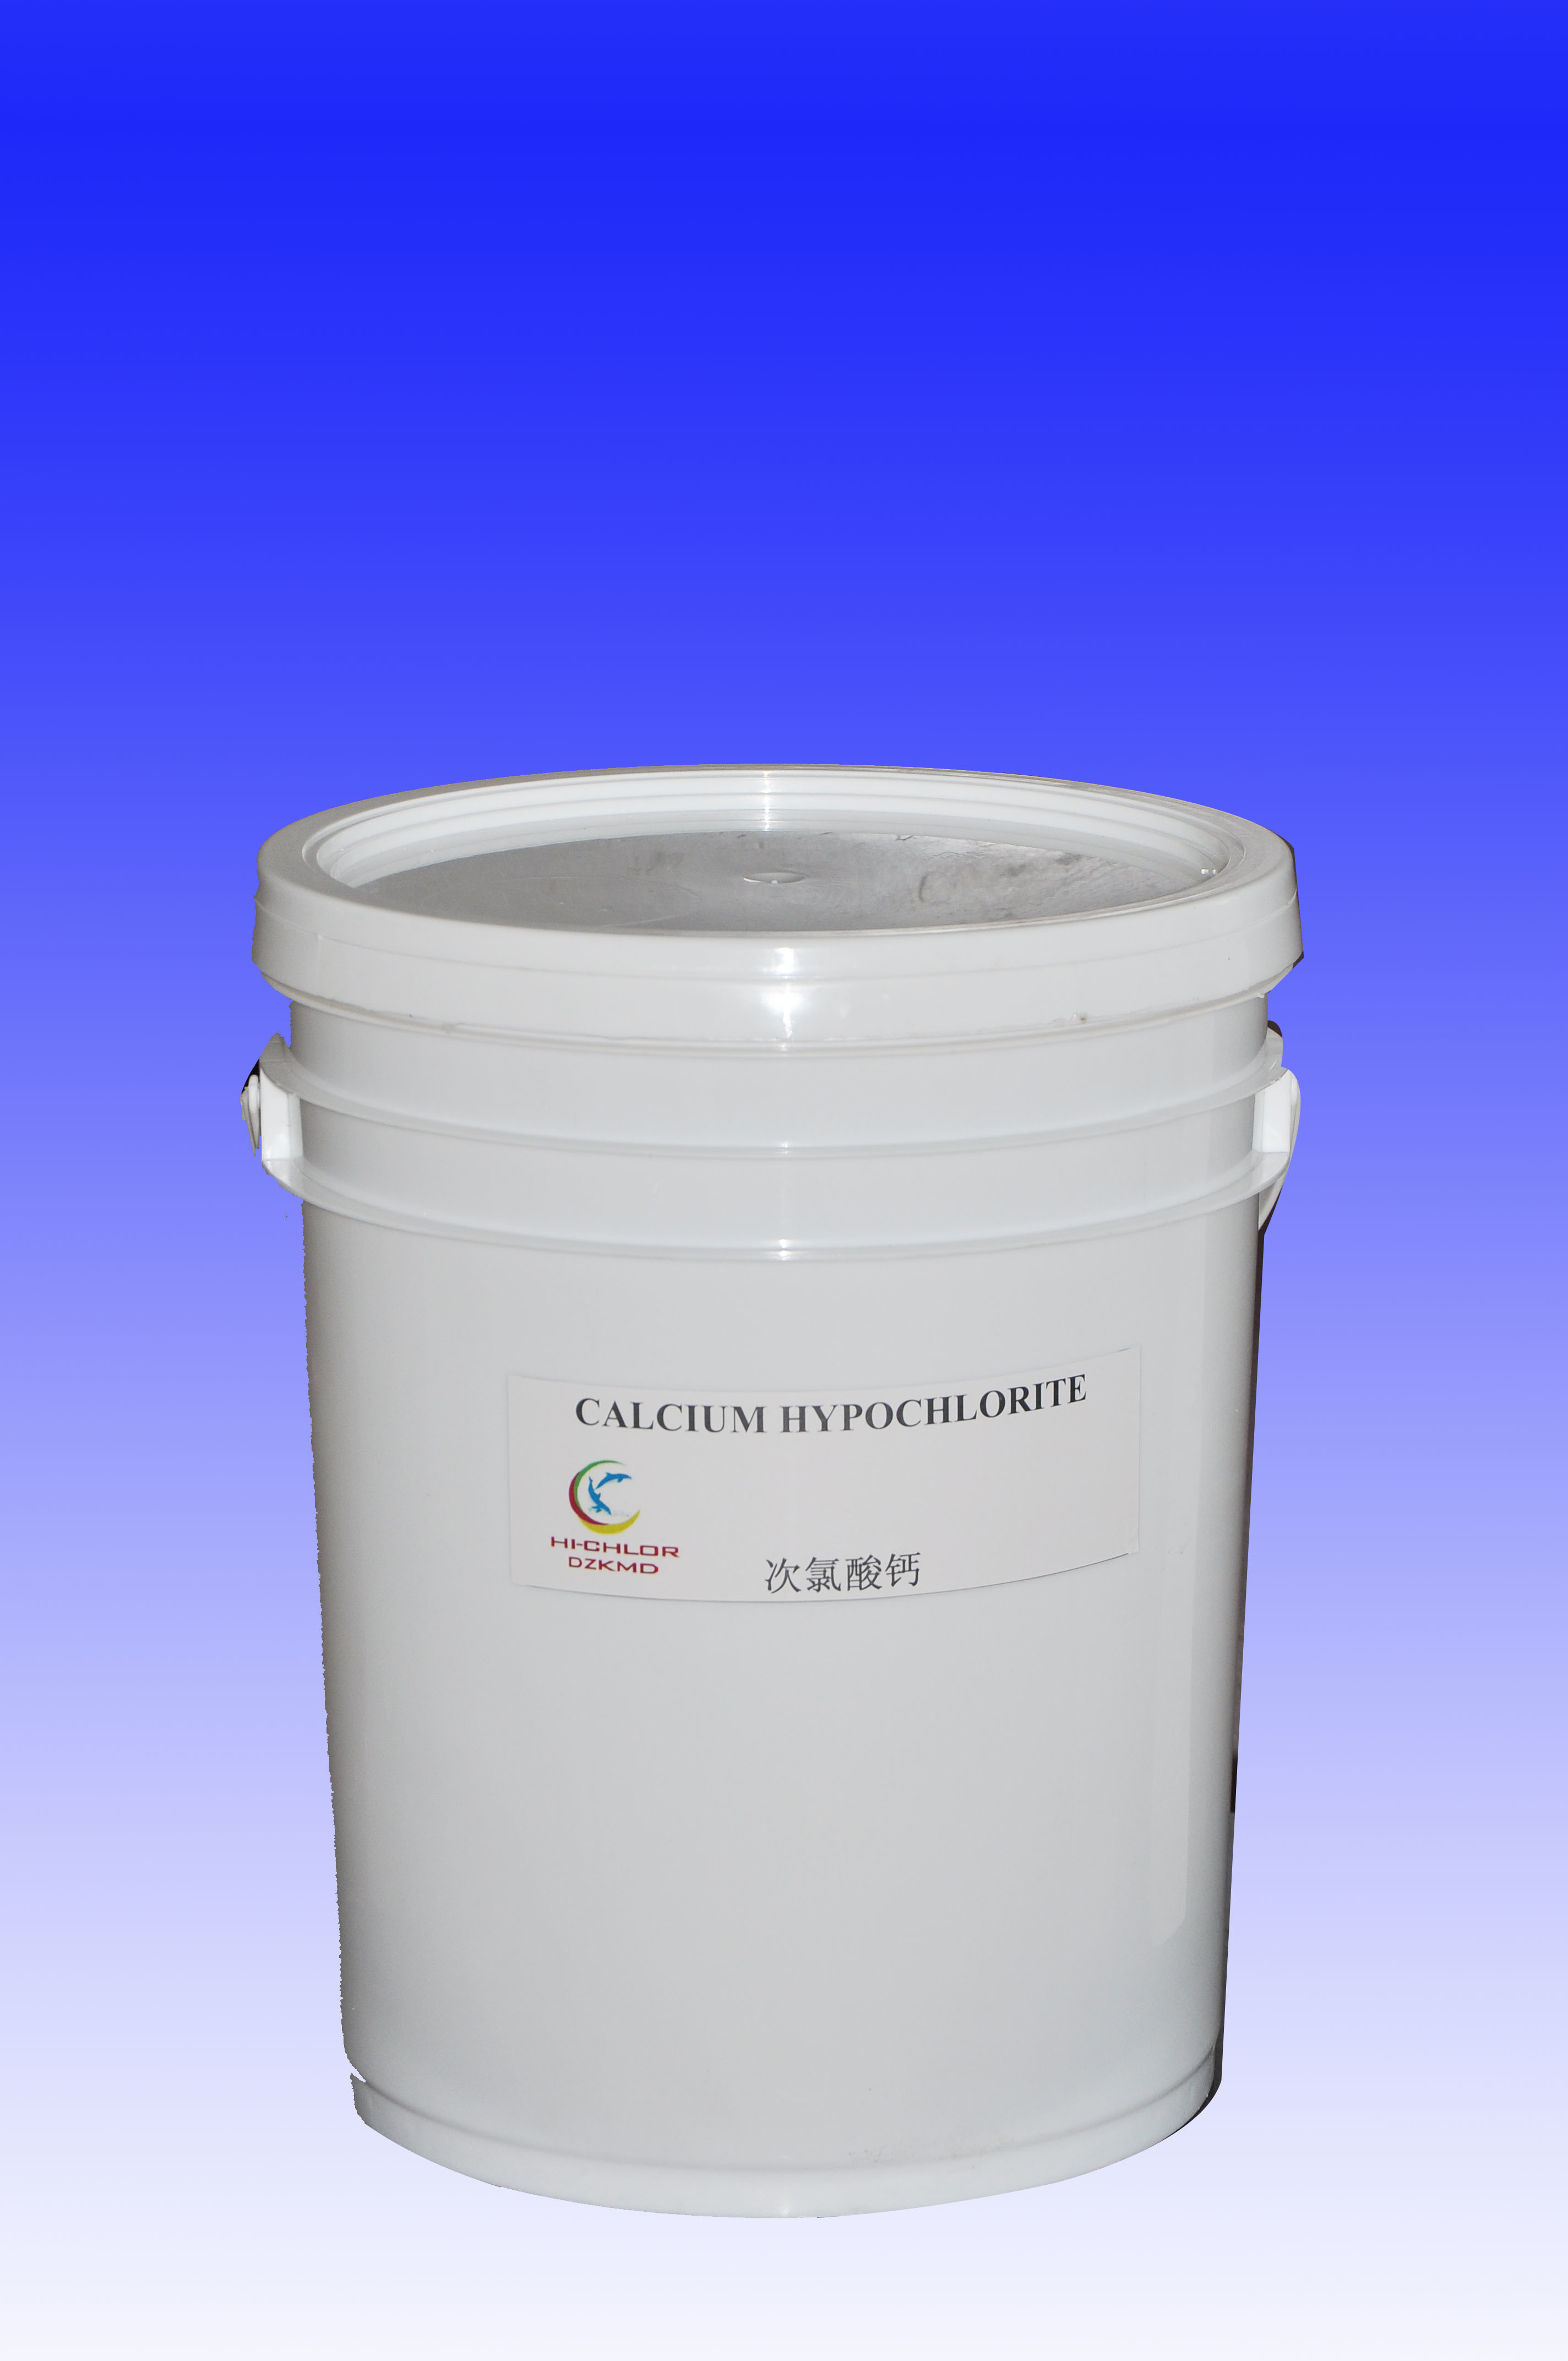 Calcium Hypochlorite 65% by Sodium Process